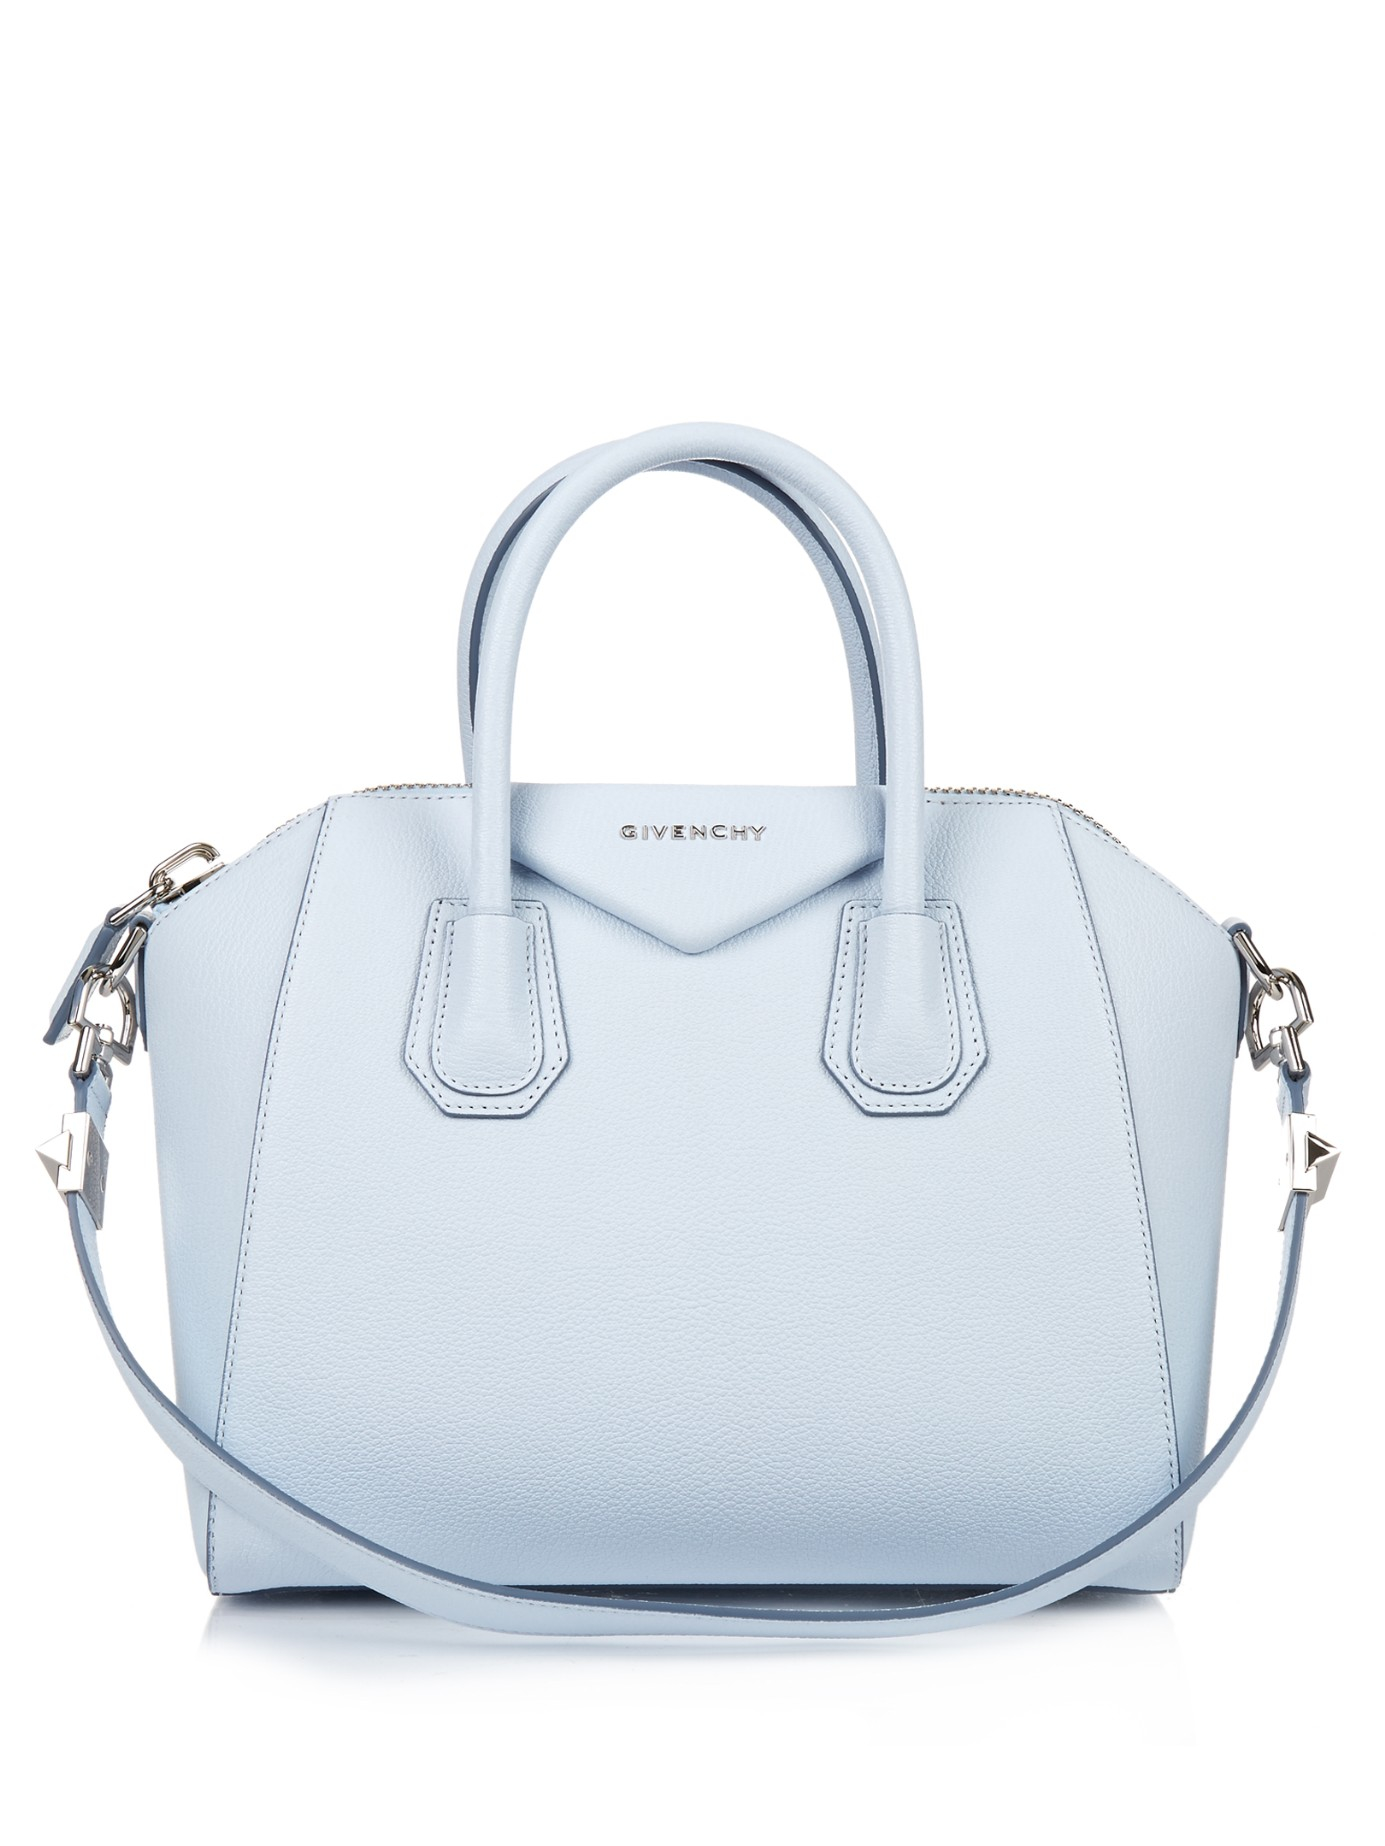 ae5224889e8a Givenchy Antigona Small Leather Tote in Blue - Lyst